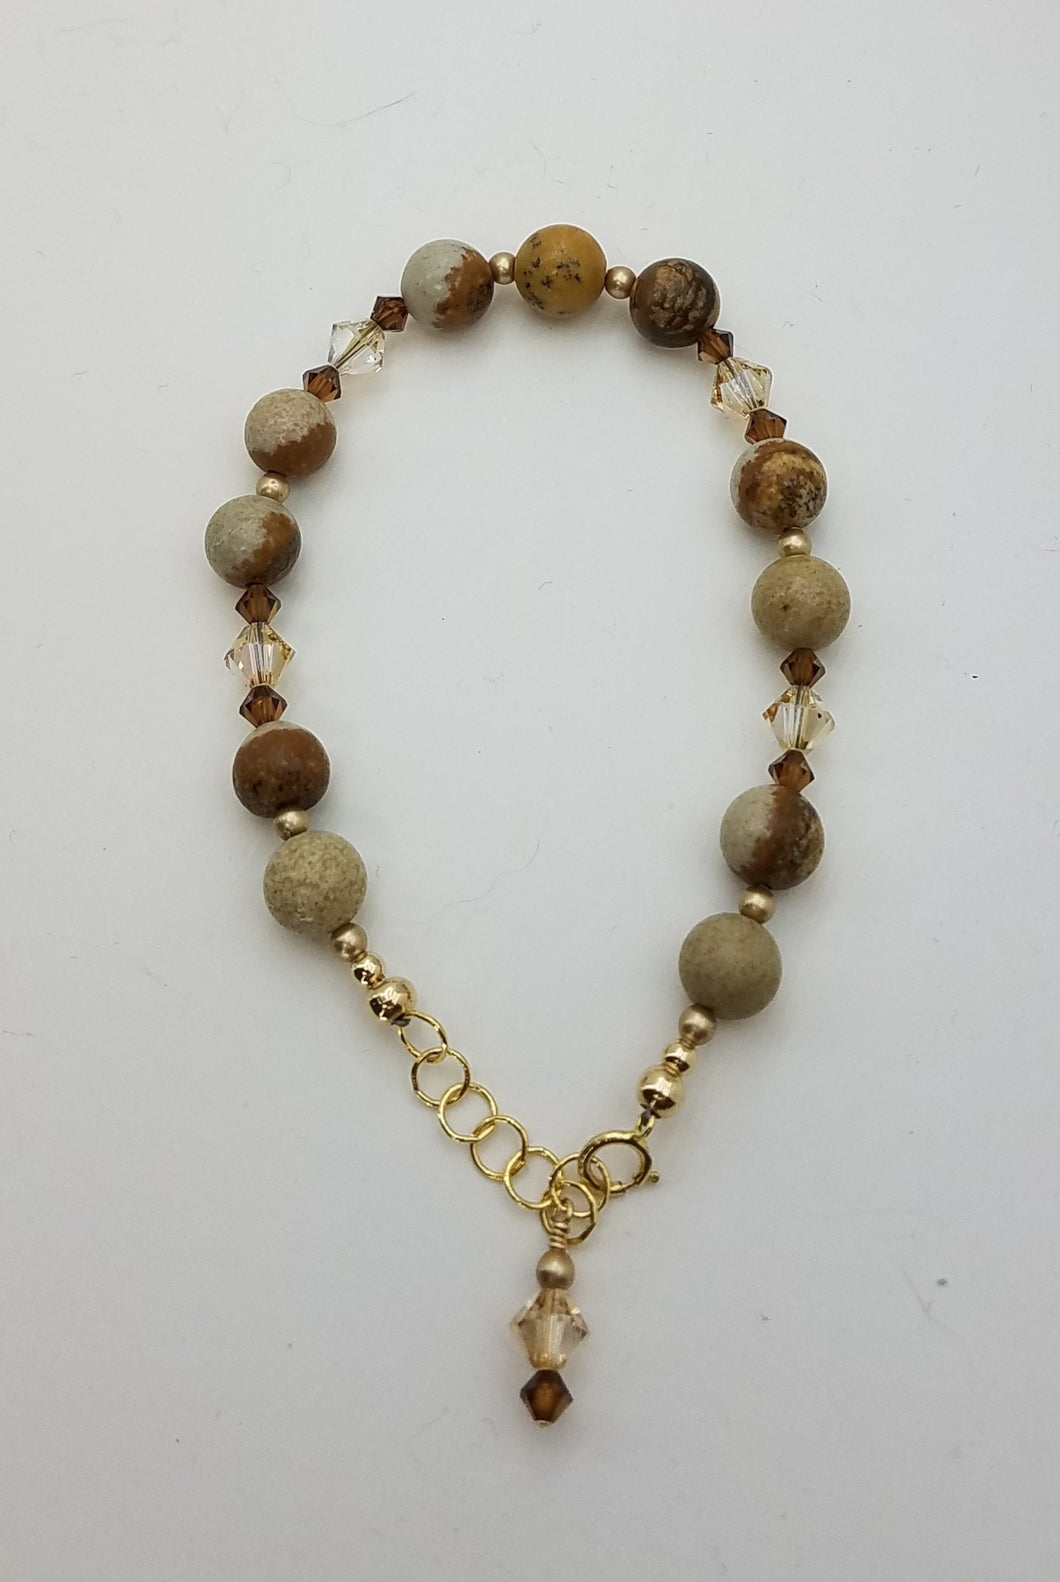 bracelet of picture jasper and crystals